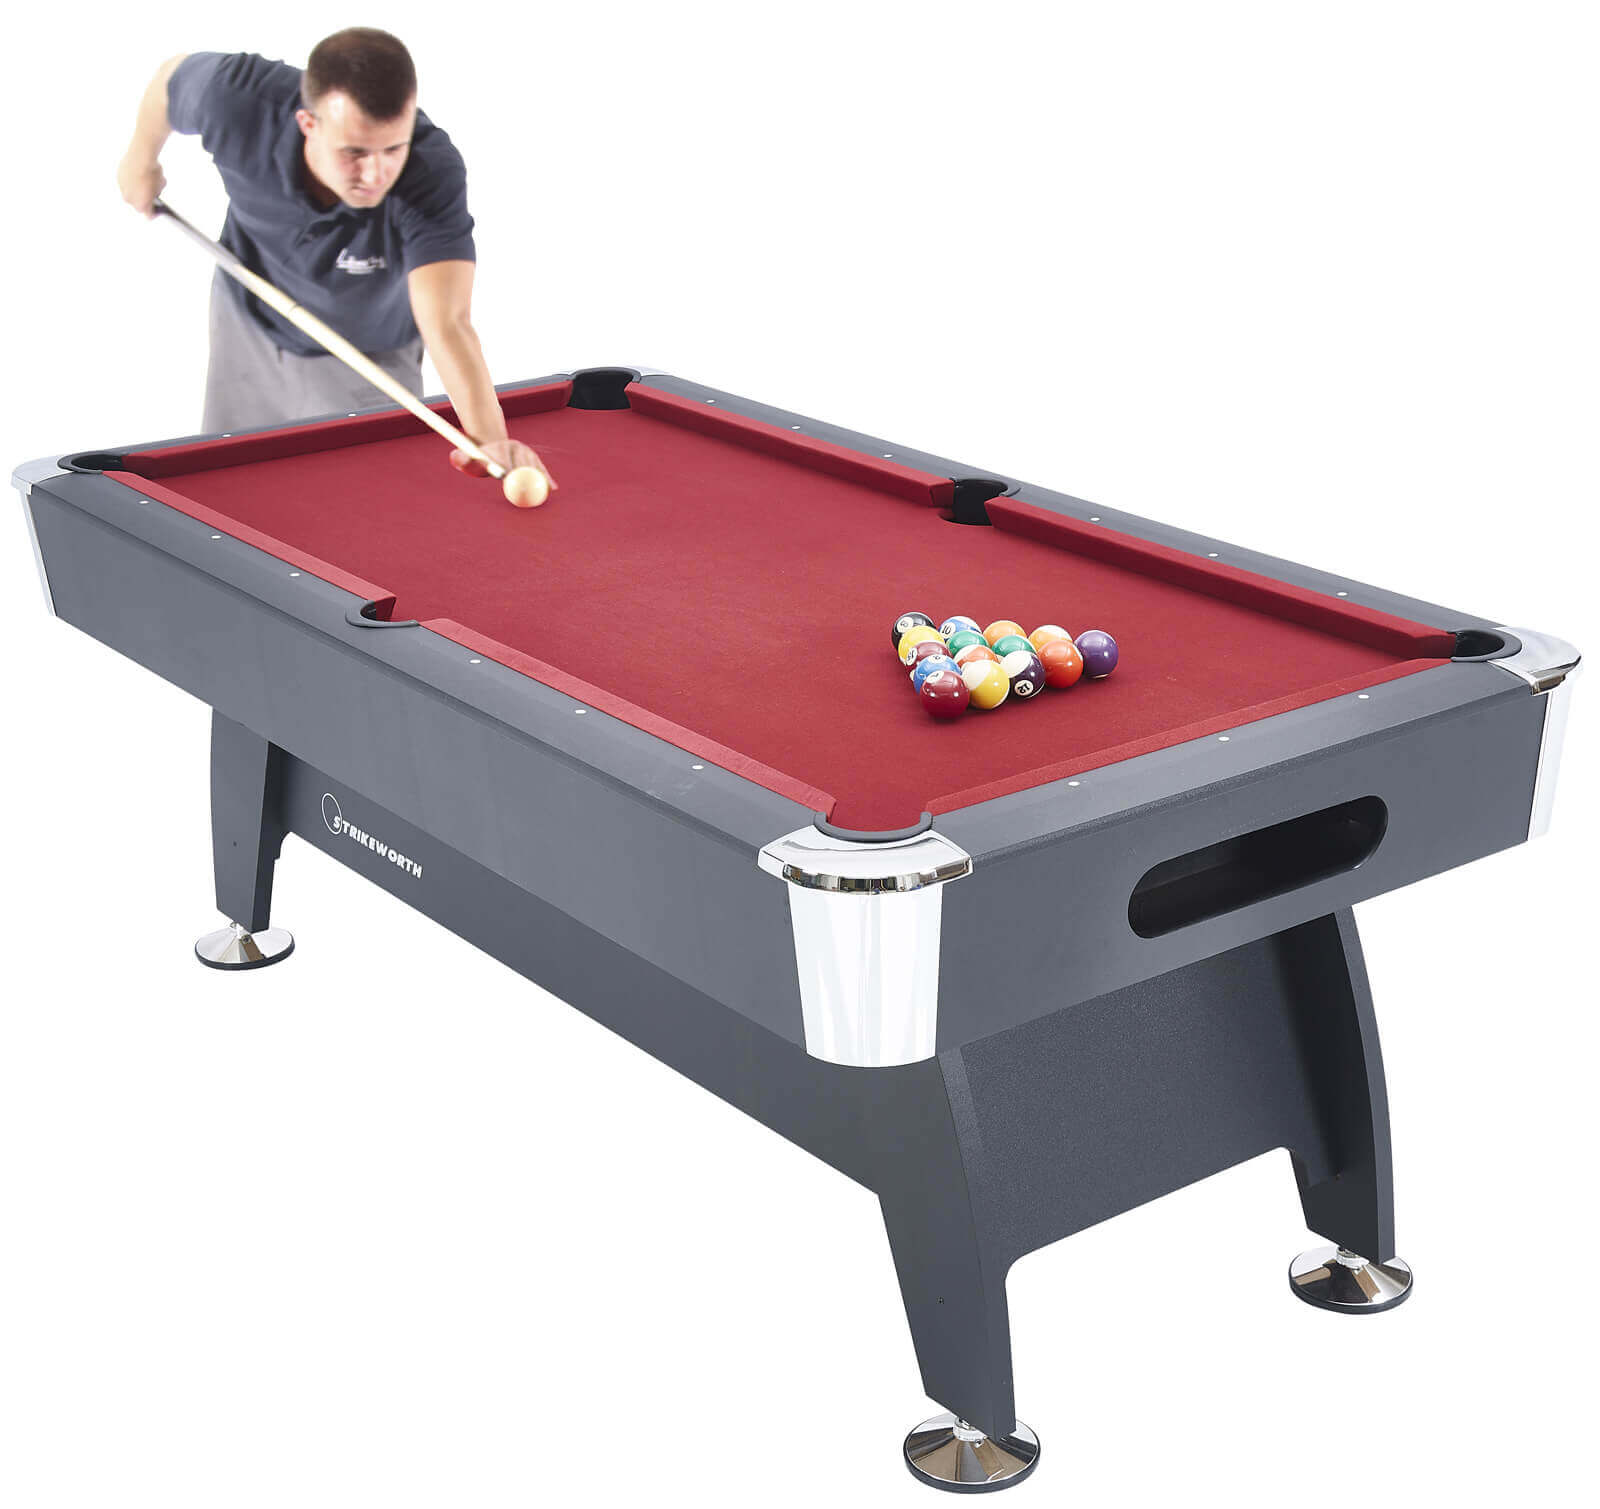 Strikeworth pro american deluxe 7ft pool table liberty games - Acheter billard table ...